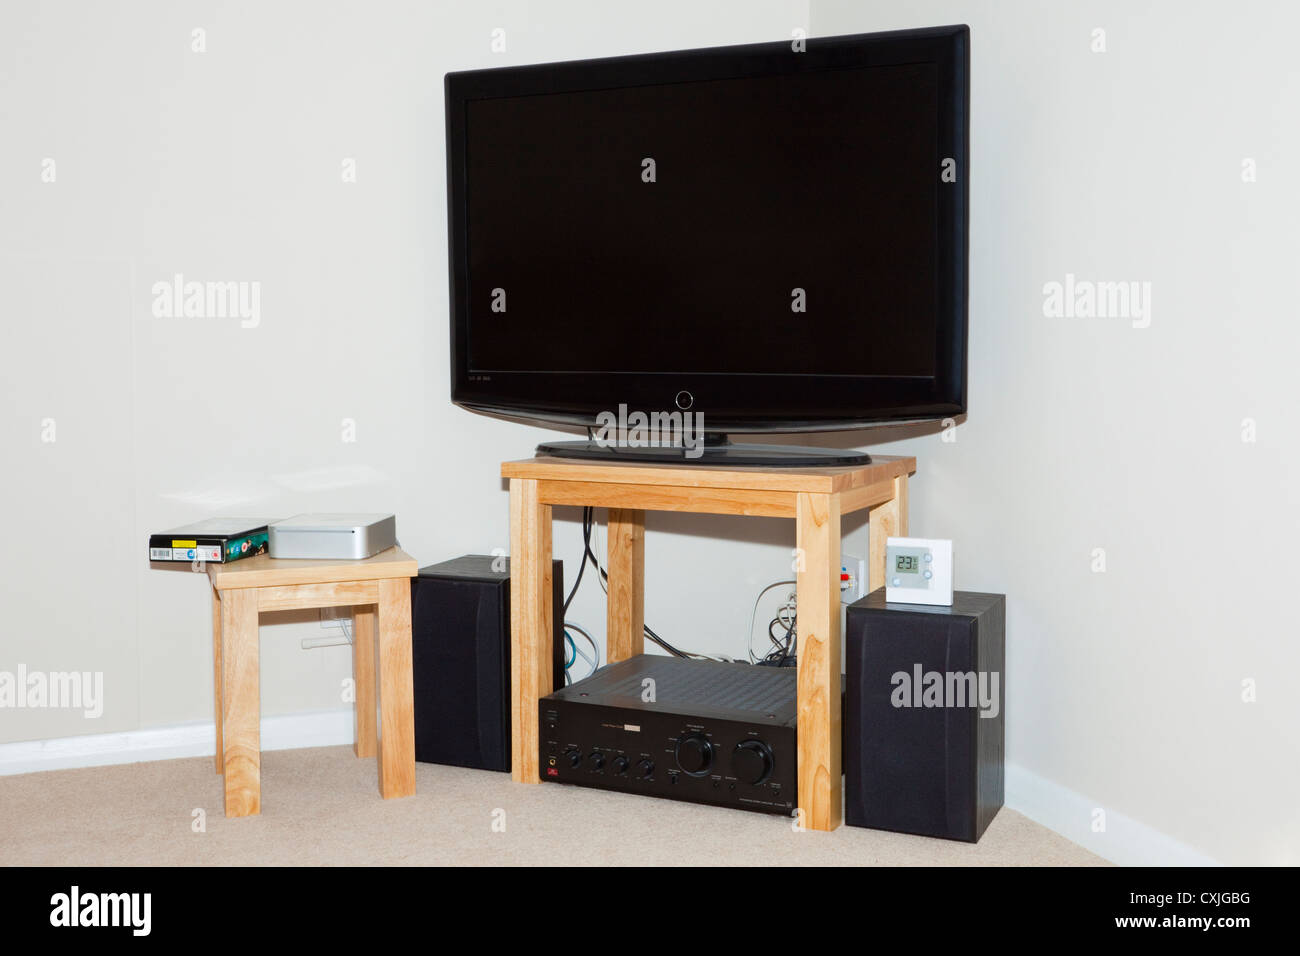 UK, Britain. Flatscreen television and speakers in the corner of a living room - Stock Image